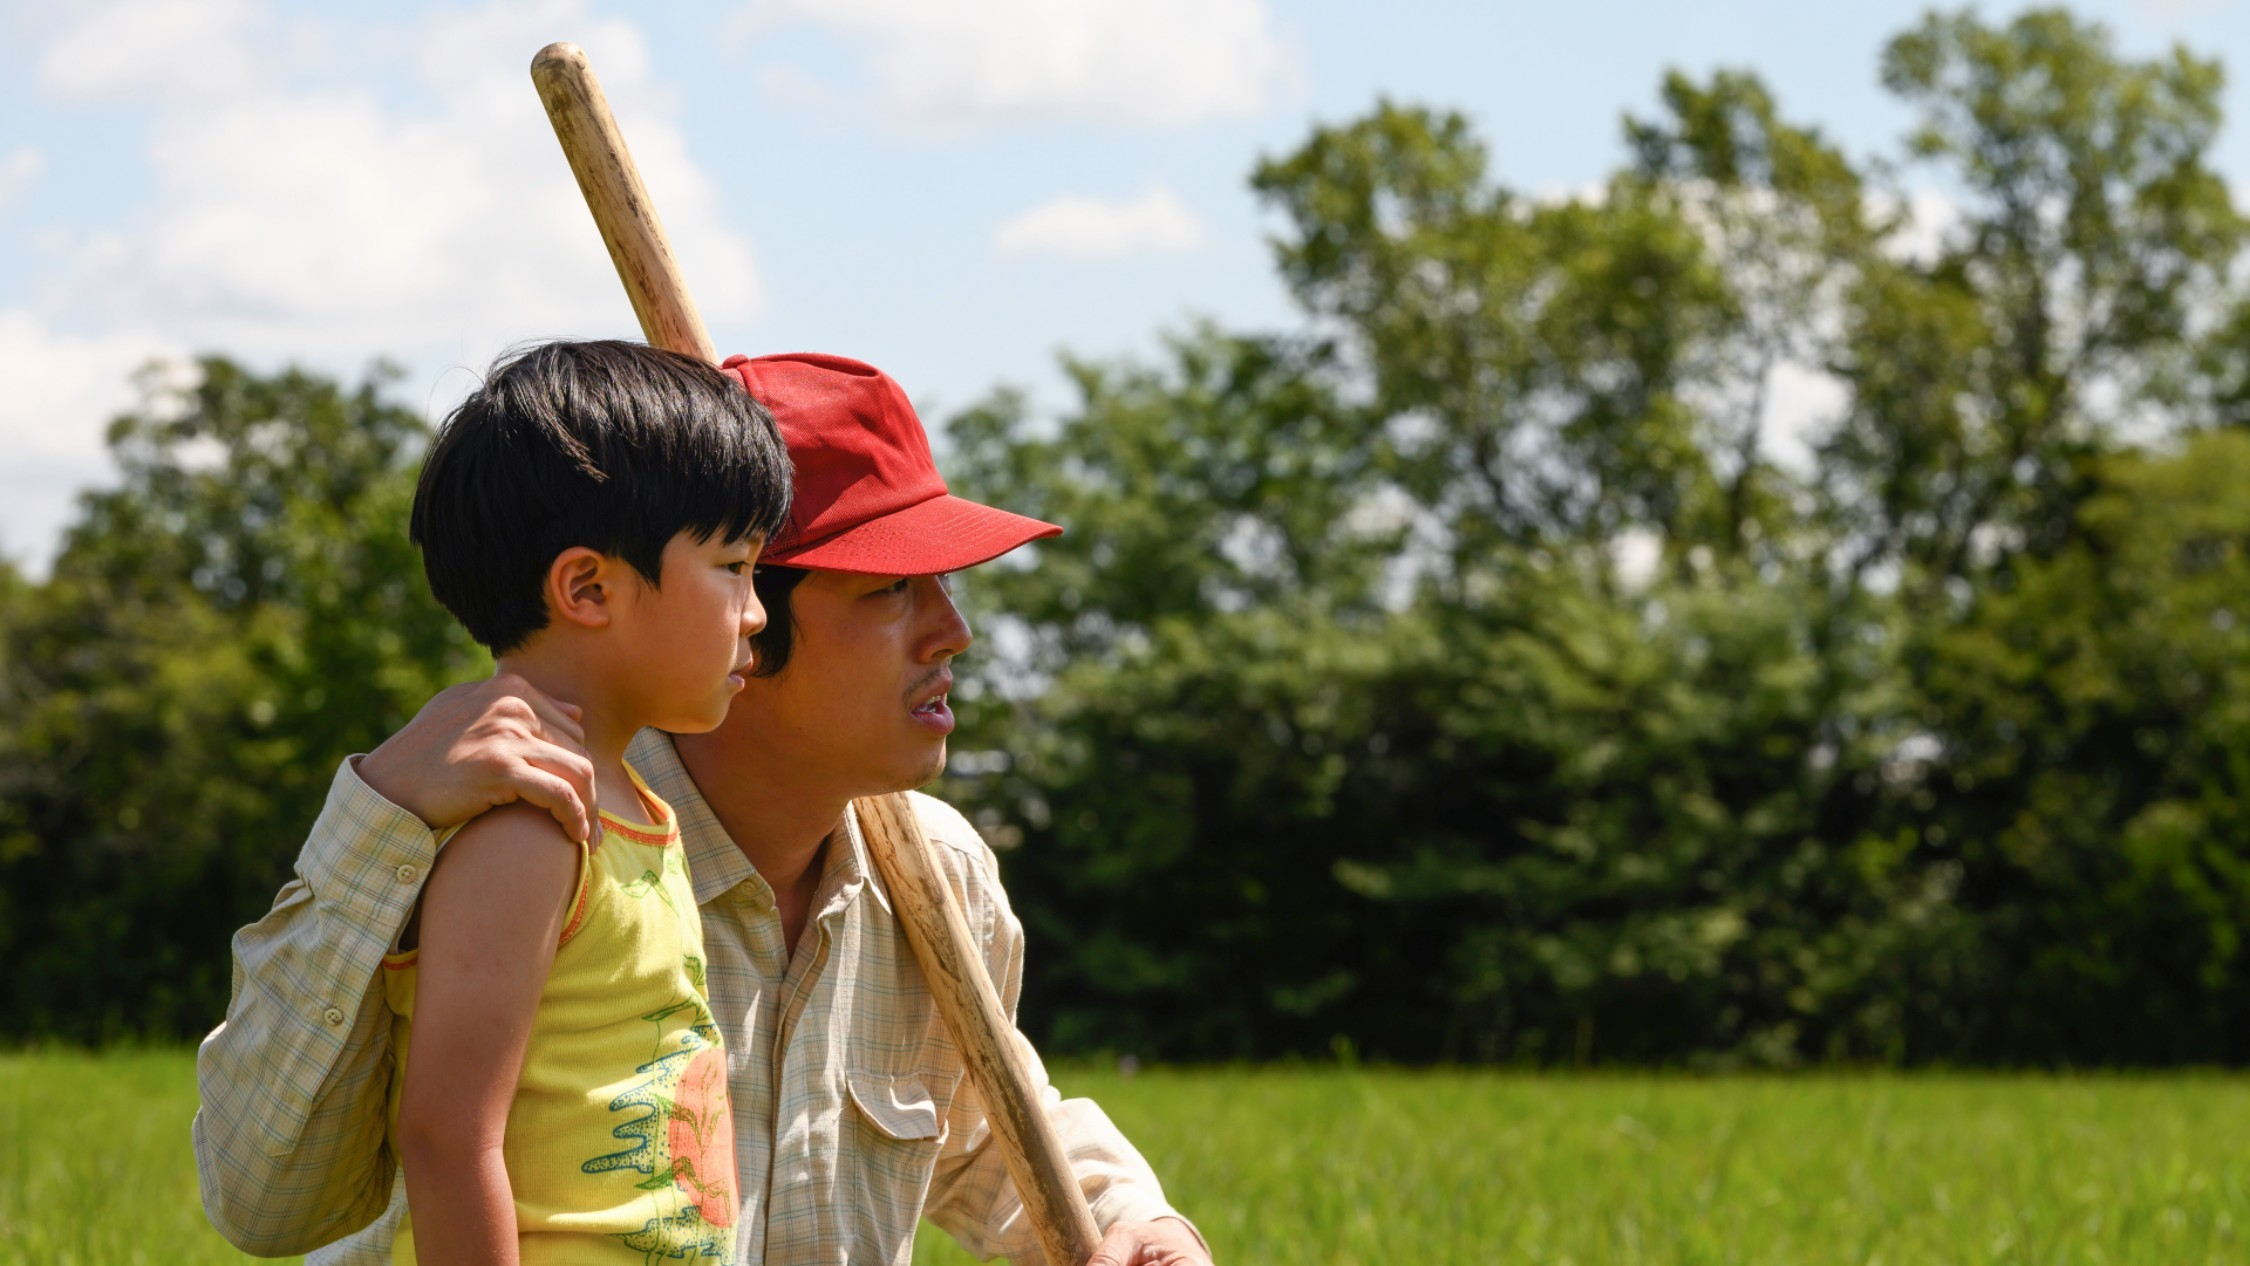 A man in a red cap with a big stick places a hand on his young son's shoulder